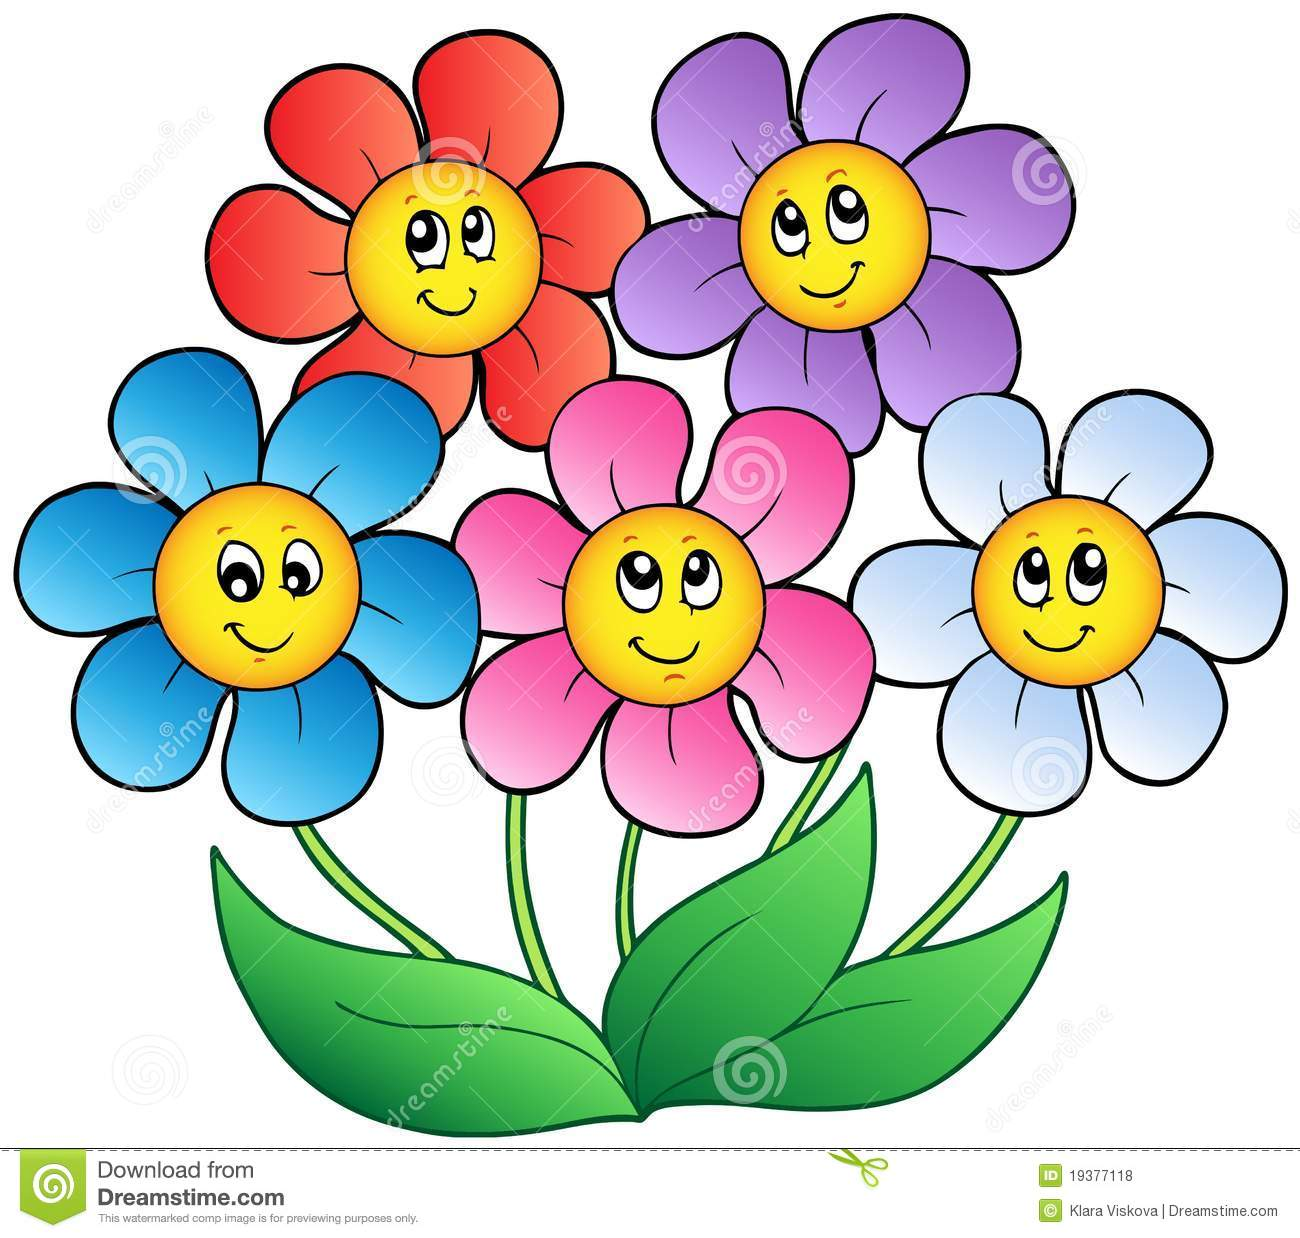 Beautiful flower clipart at getdrawings free for personal use 1300x1238 flower cartoon pictures clip art printable in amusing five flowers izmirmasajfo